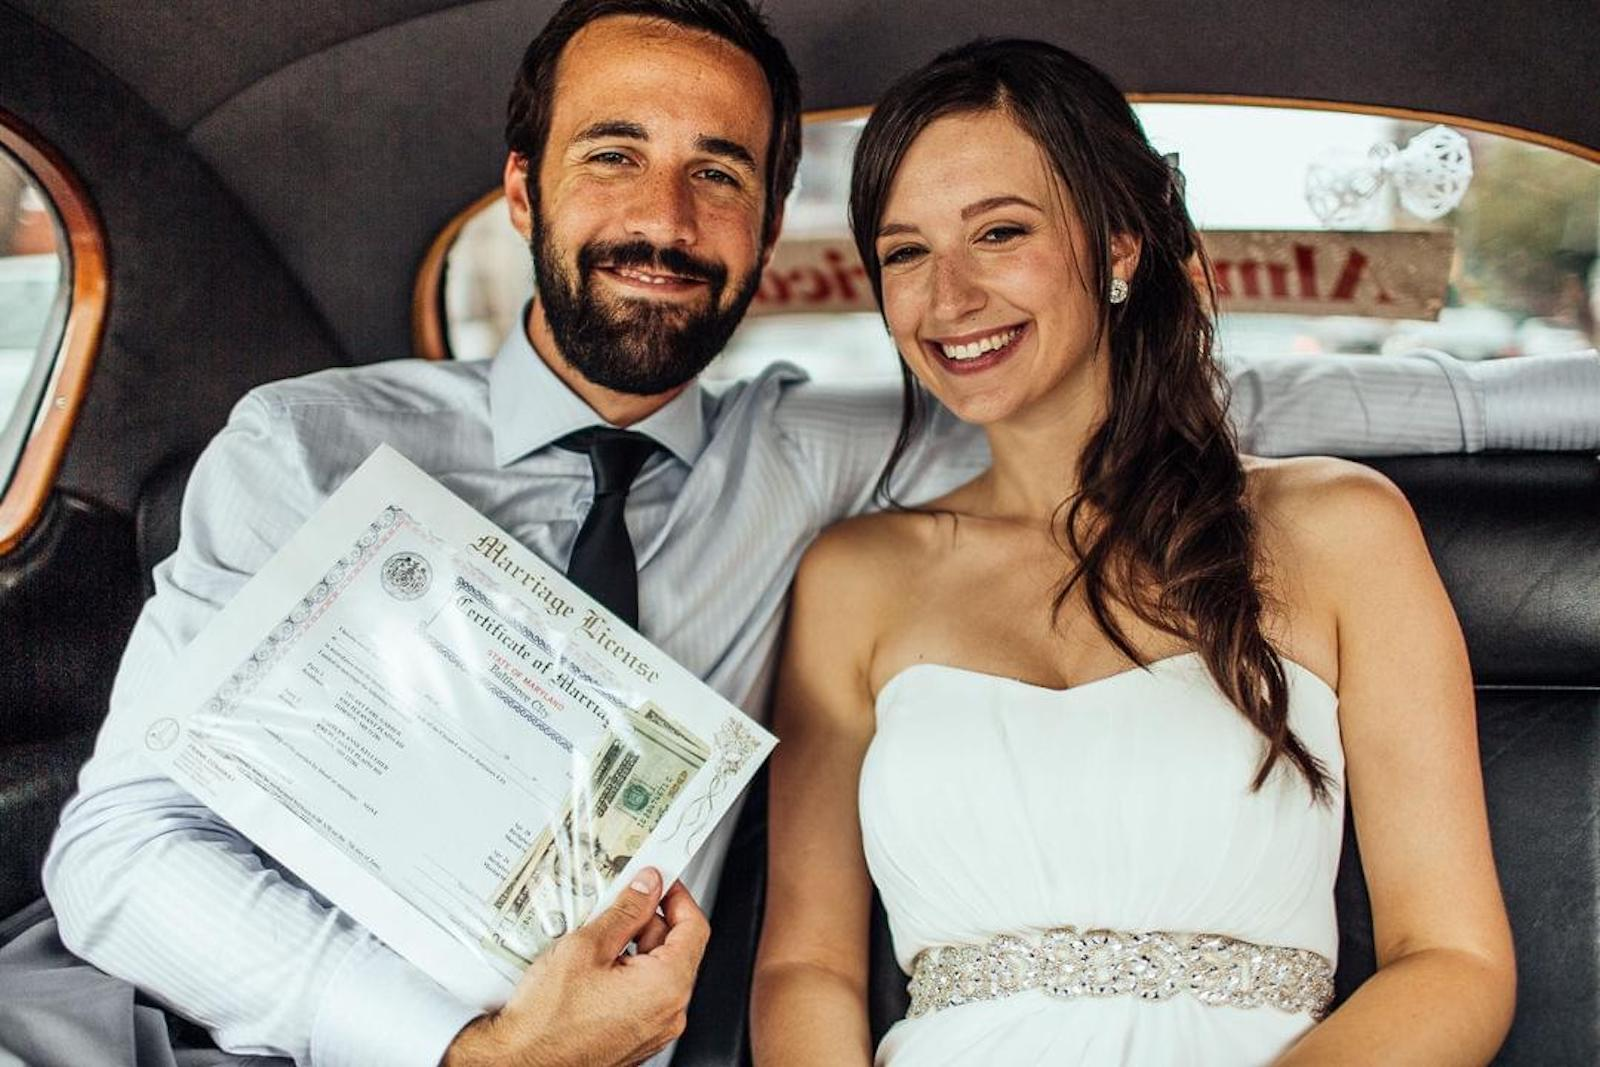 bride and groom sitting in the backseat of car posing with marriage license